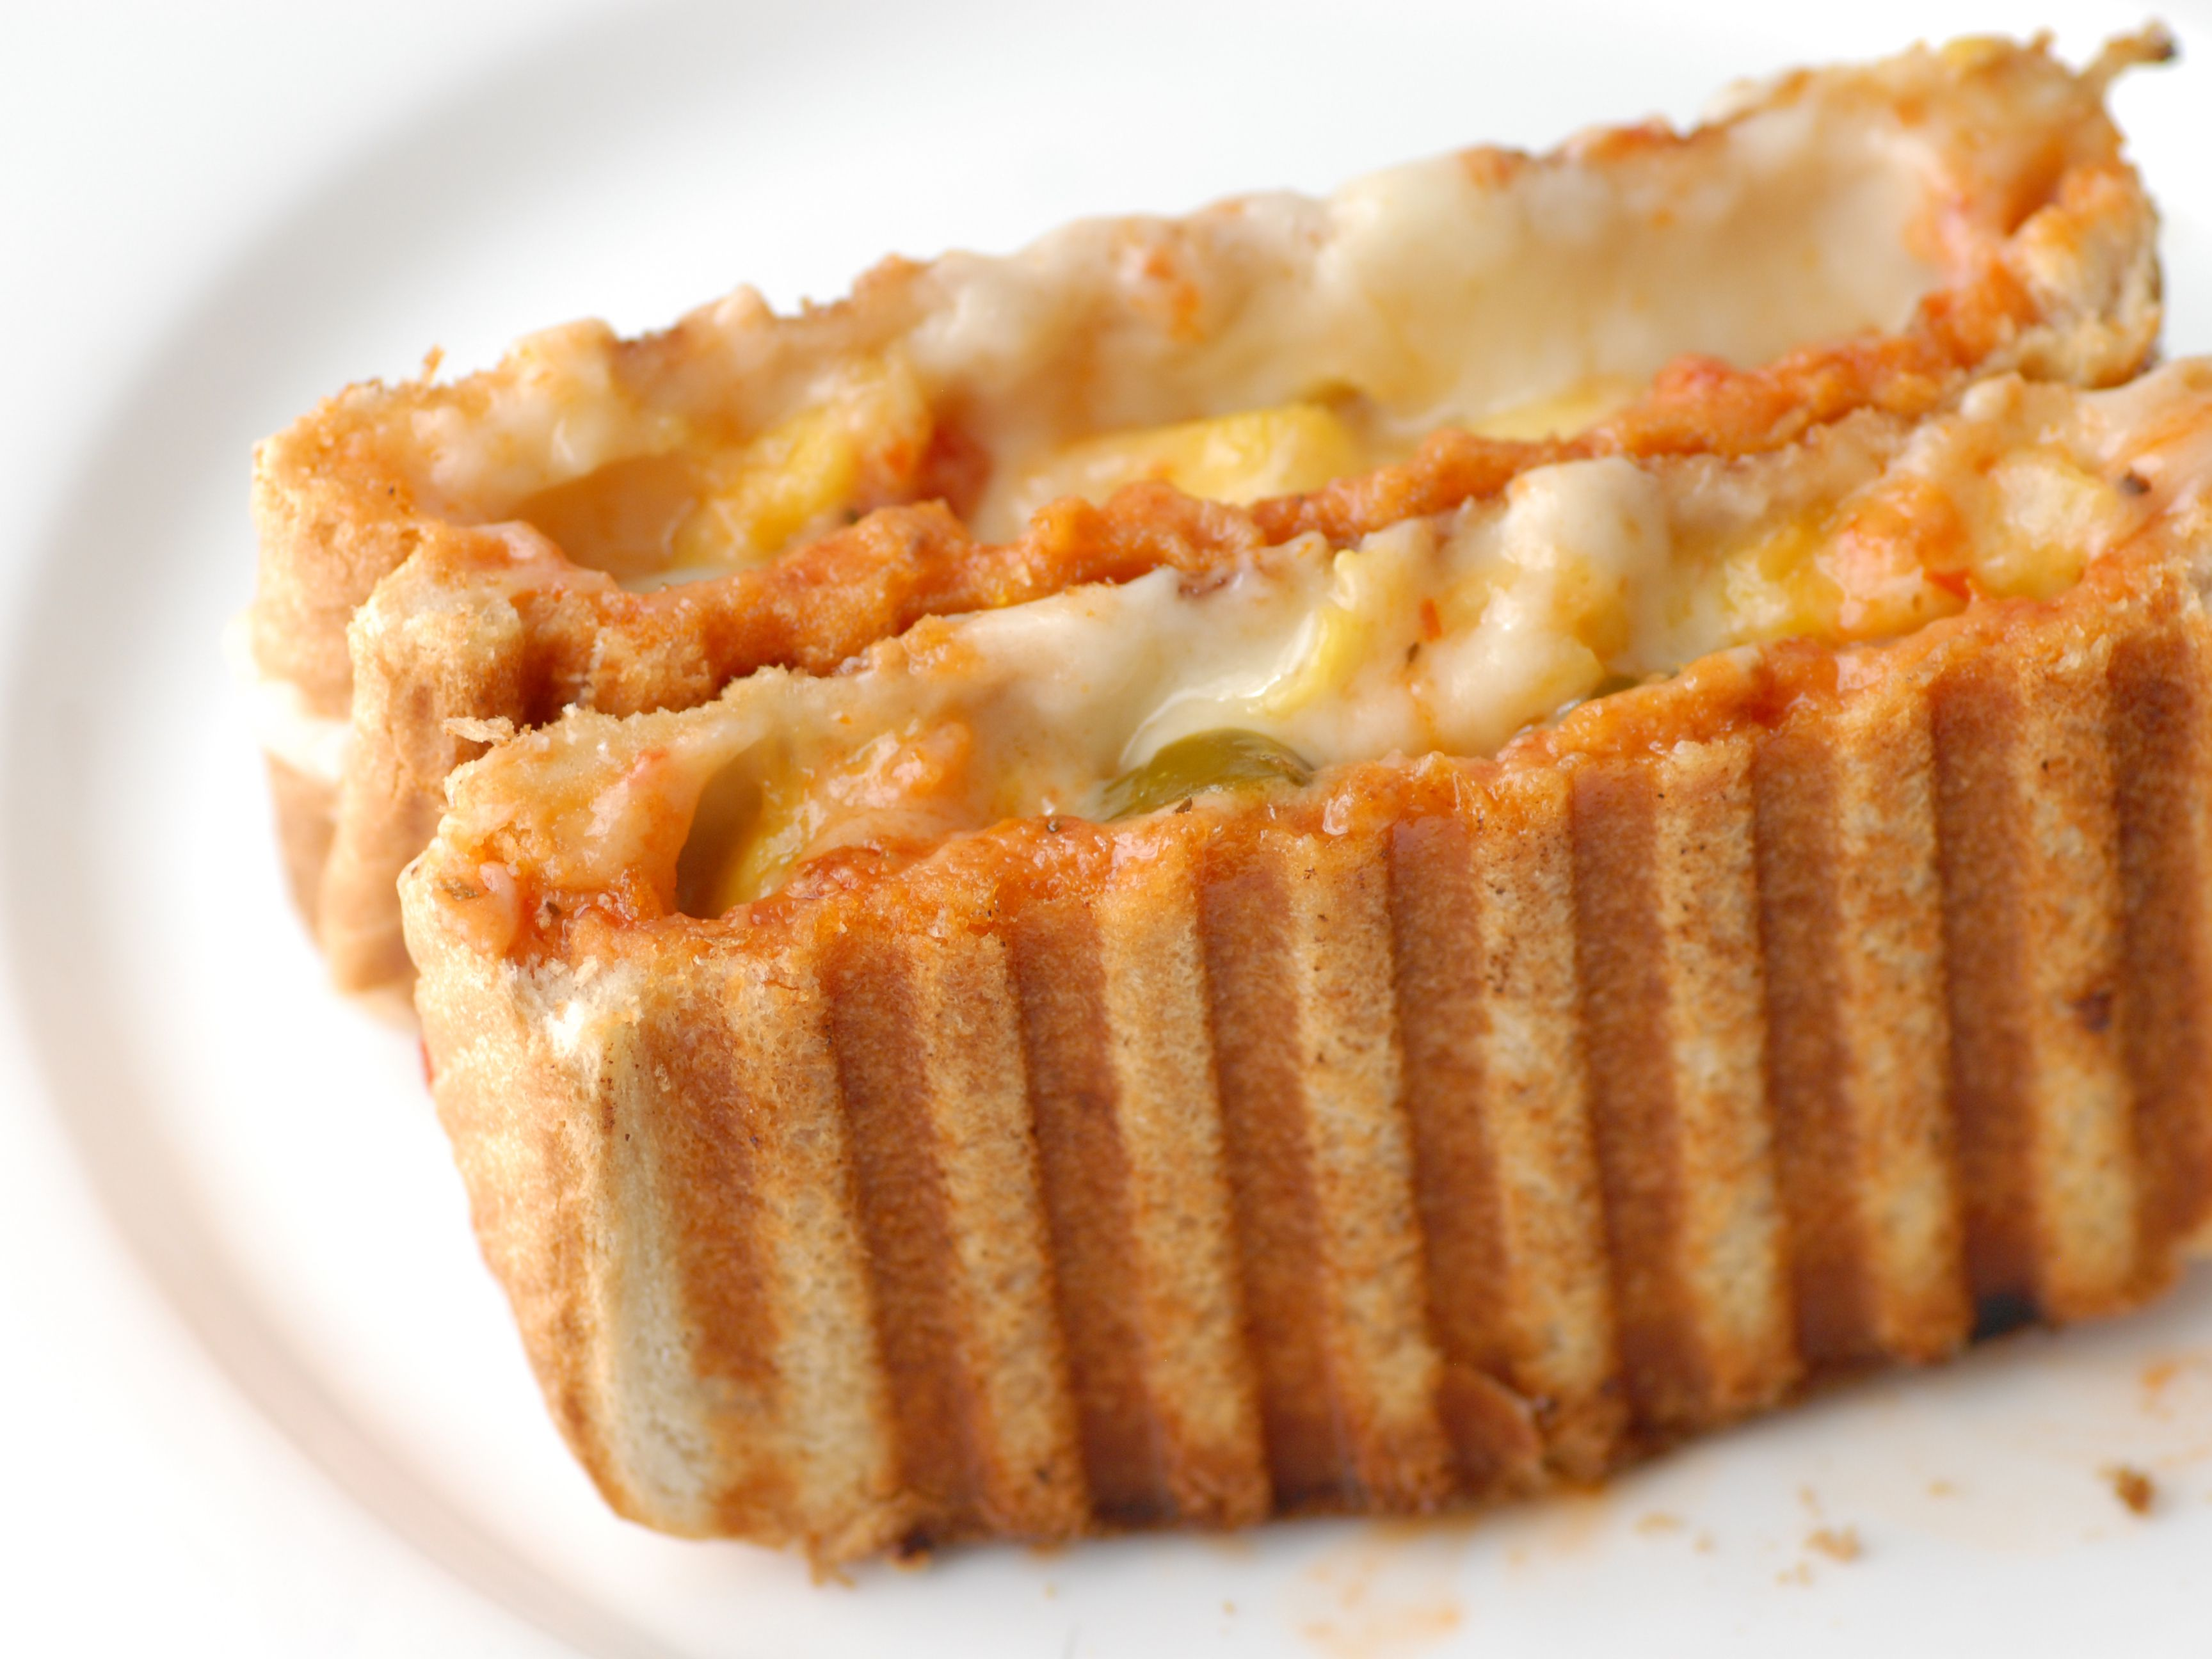 How to Make a Grilled Cheese Using a Panini Press